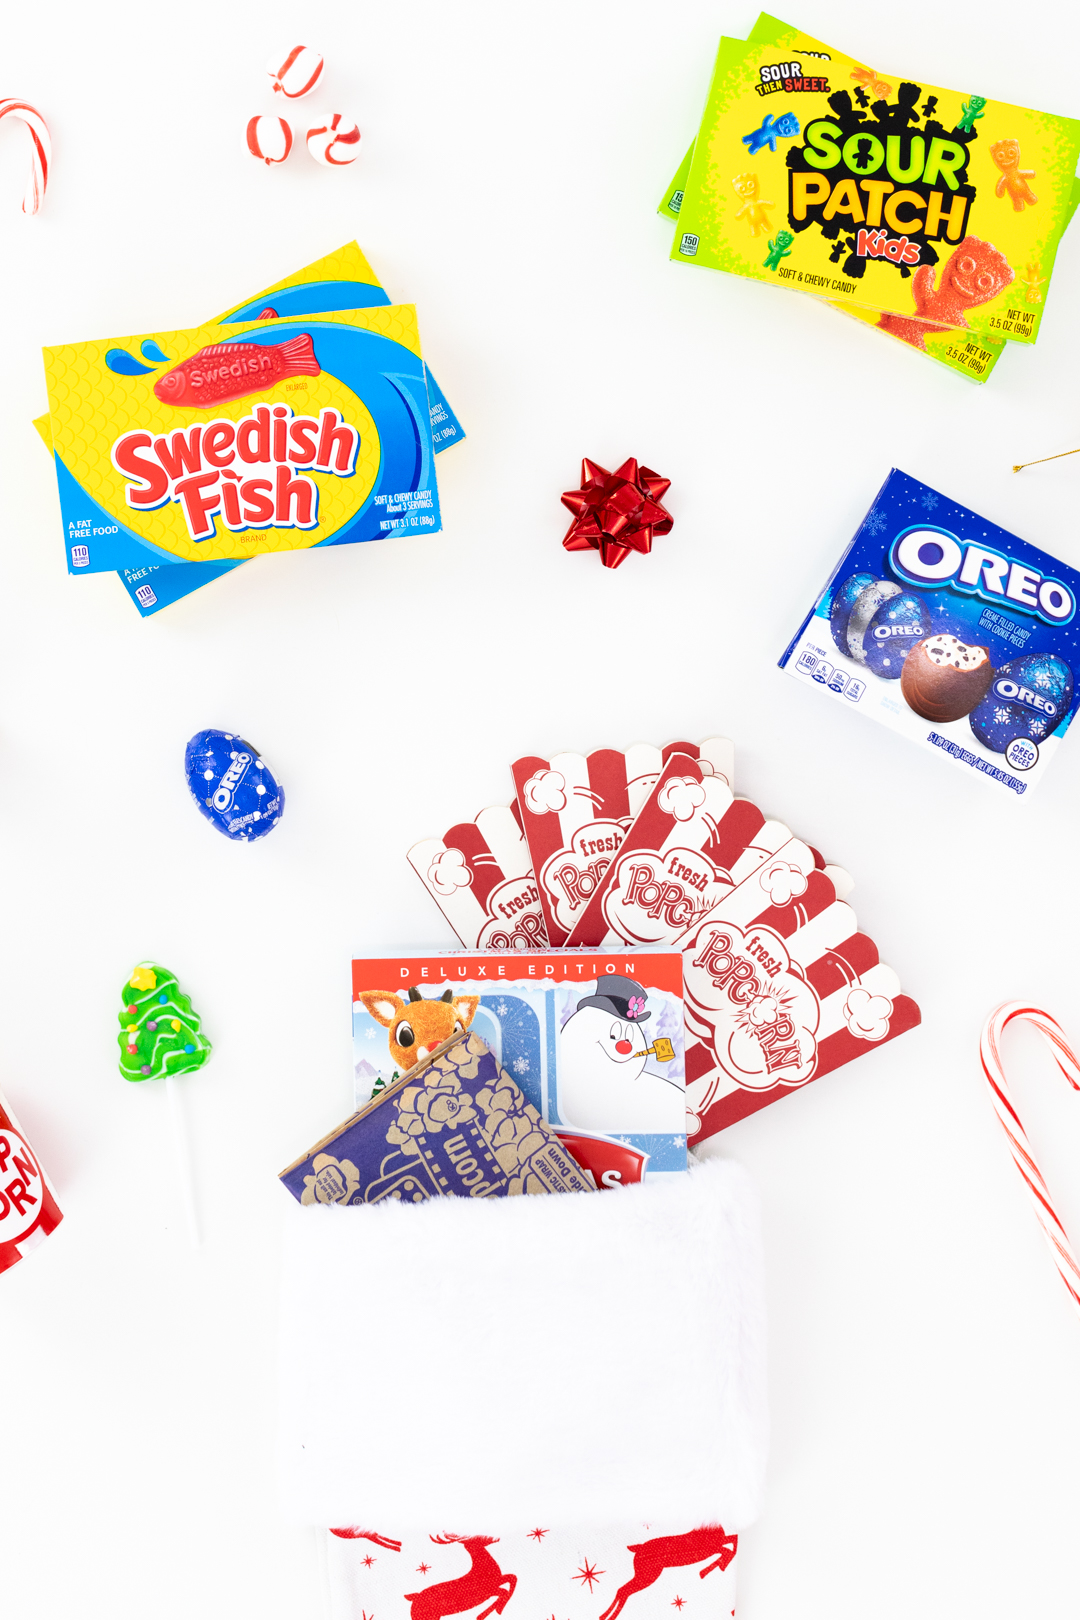 movie themed stocking with fillers like microwave popcorn, candy, popcorn ornament and more